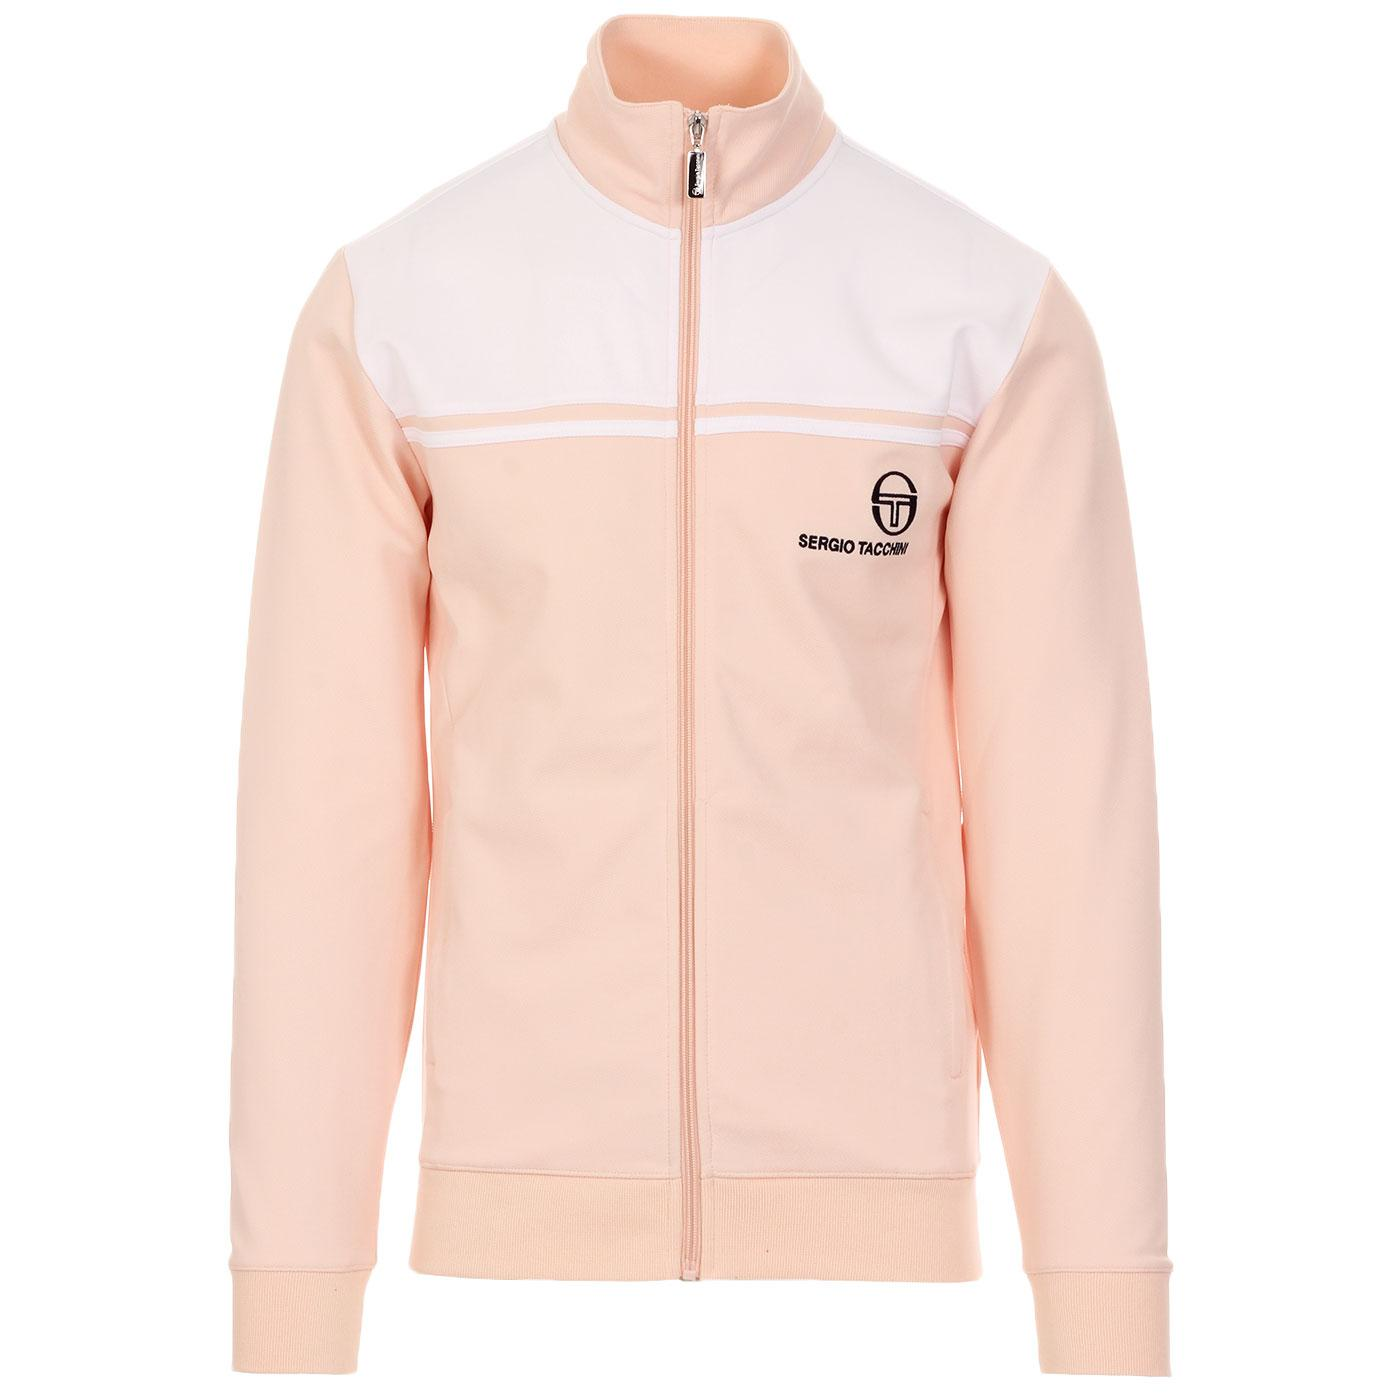 New Young Line SERGIO TACCHINI 80s Track Top BLUSH